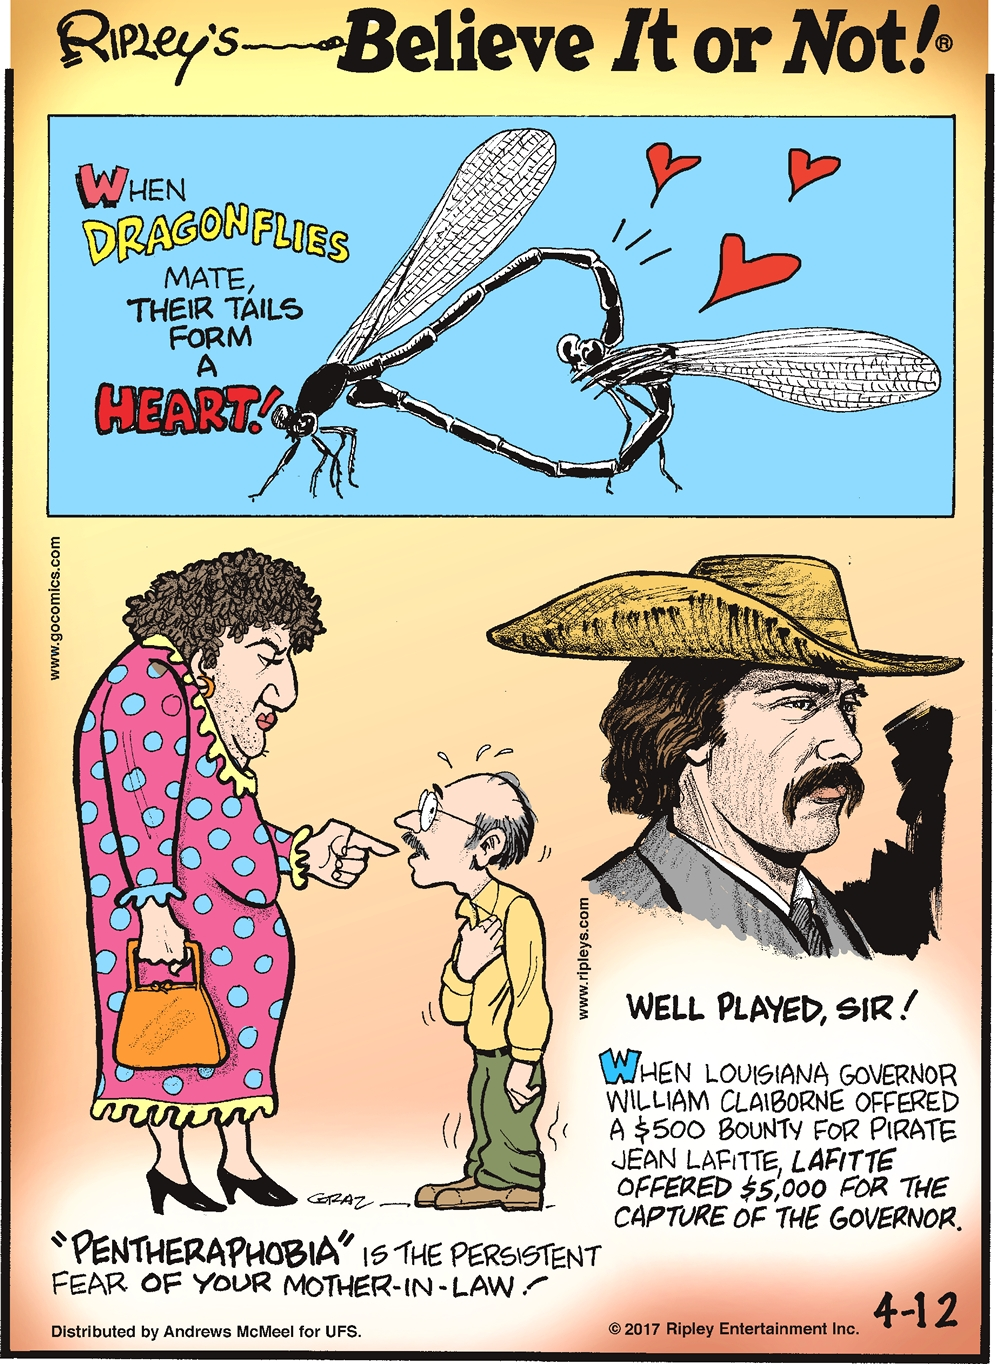 "When dragonflies mate, their tails form a heart!-------------------- ""Pentheraphobia""is the persistent fear of your mother-in-law!-------------------- When Louisiana Governor William Claiborne offered a $500 bounty for pirate Jean Lafitte, Lafitte offered $5,000 for the capture of the governor."